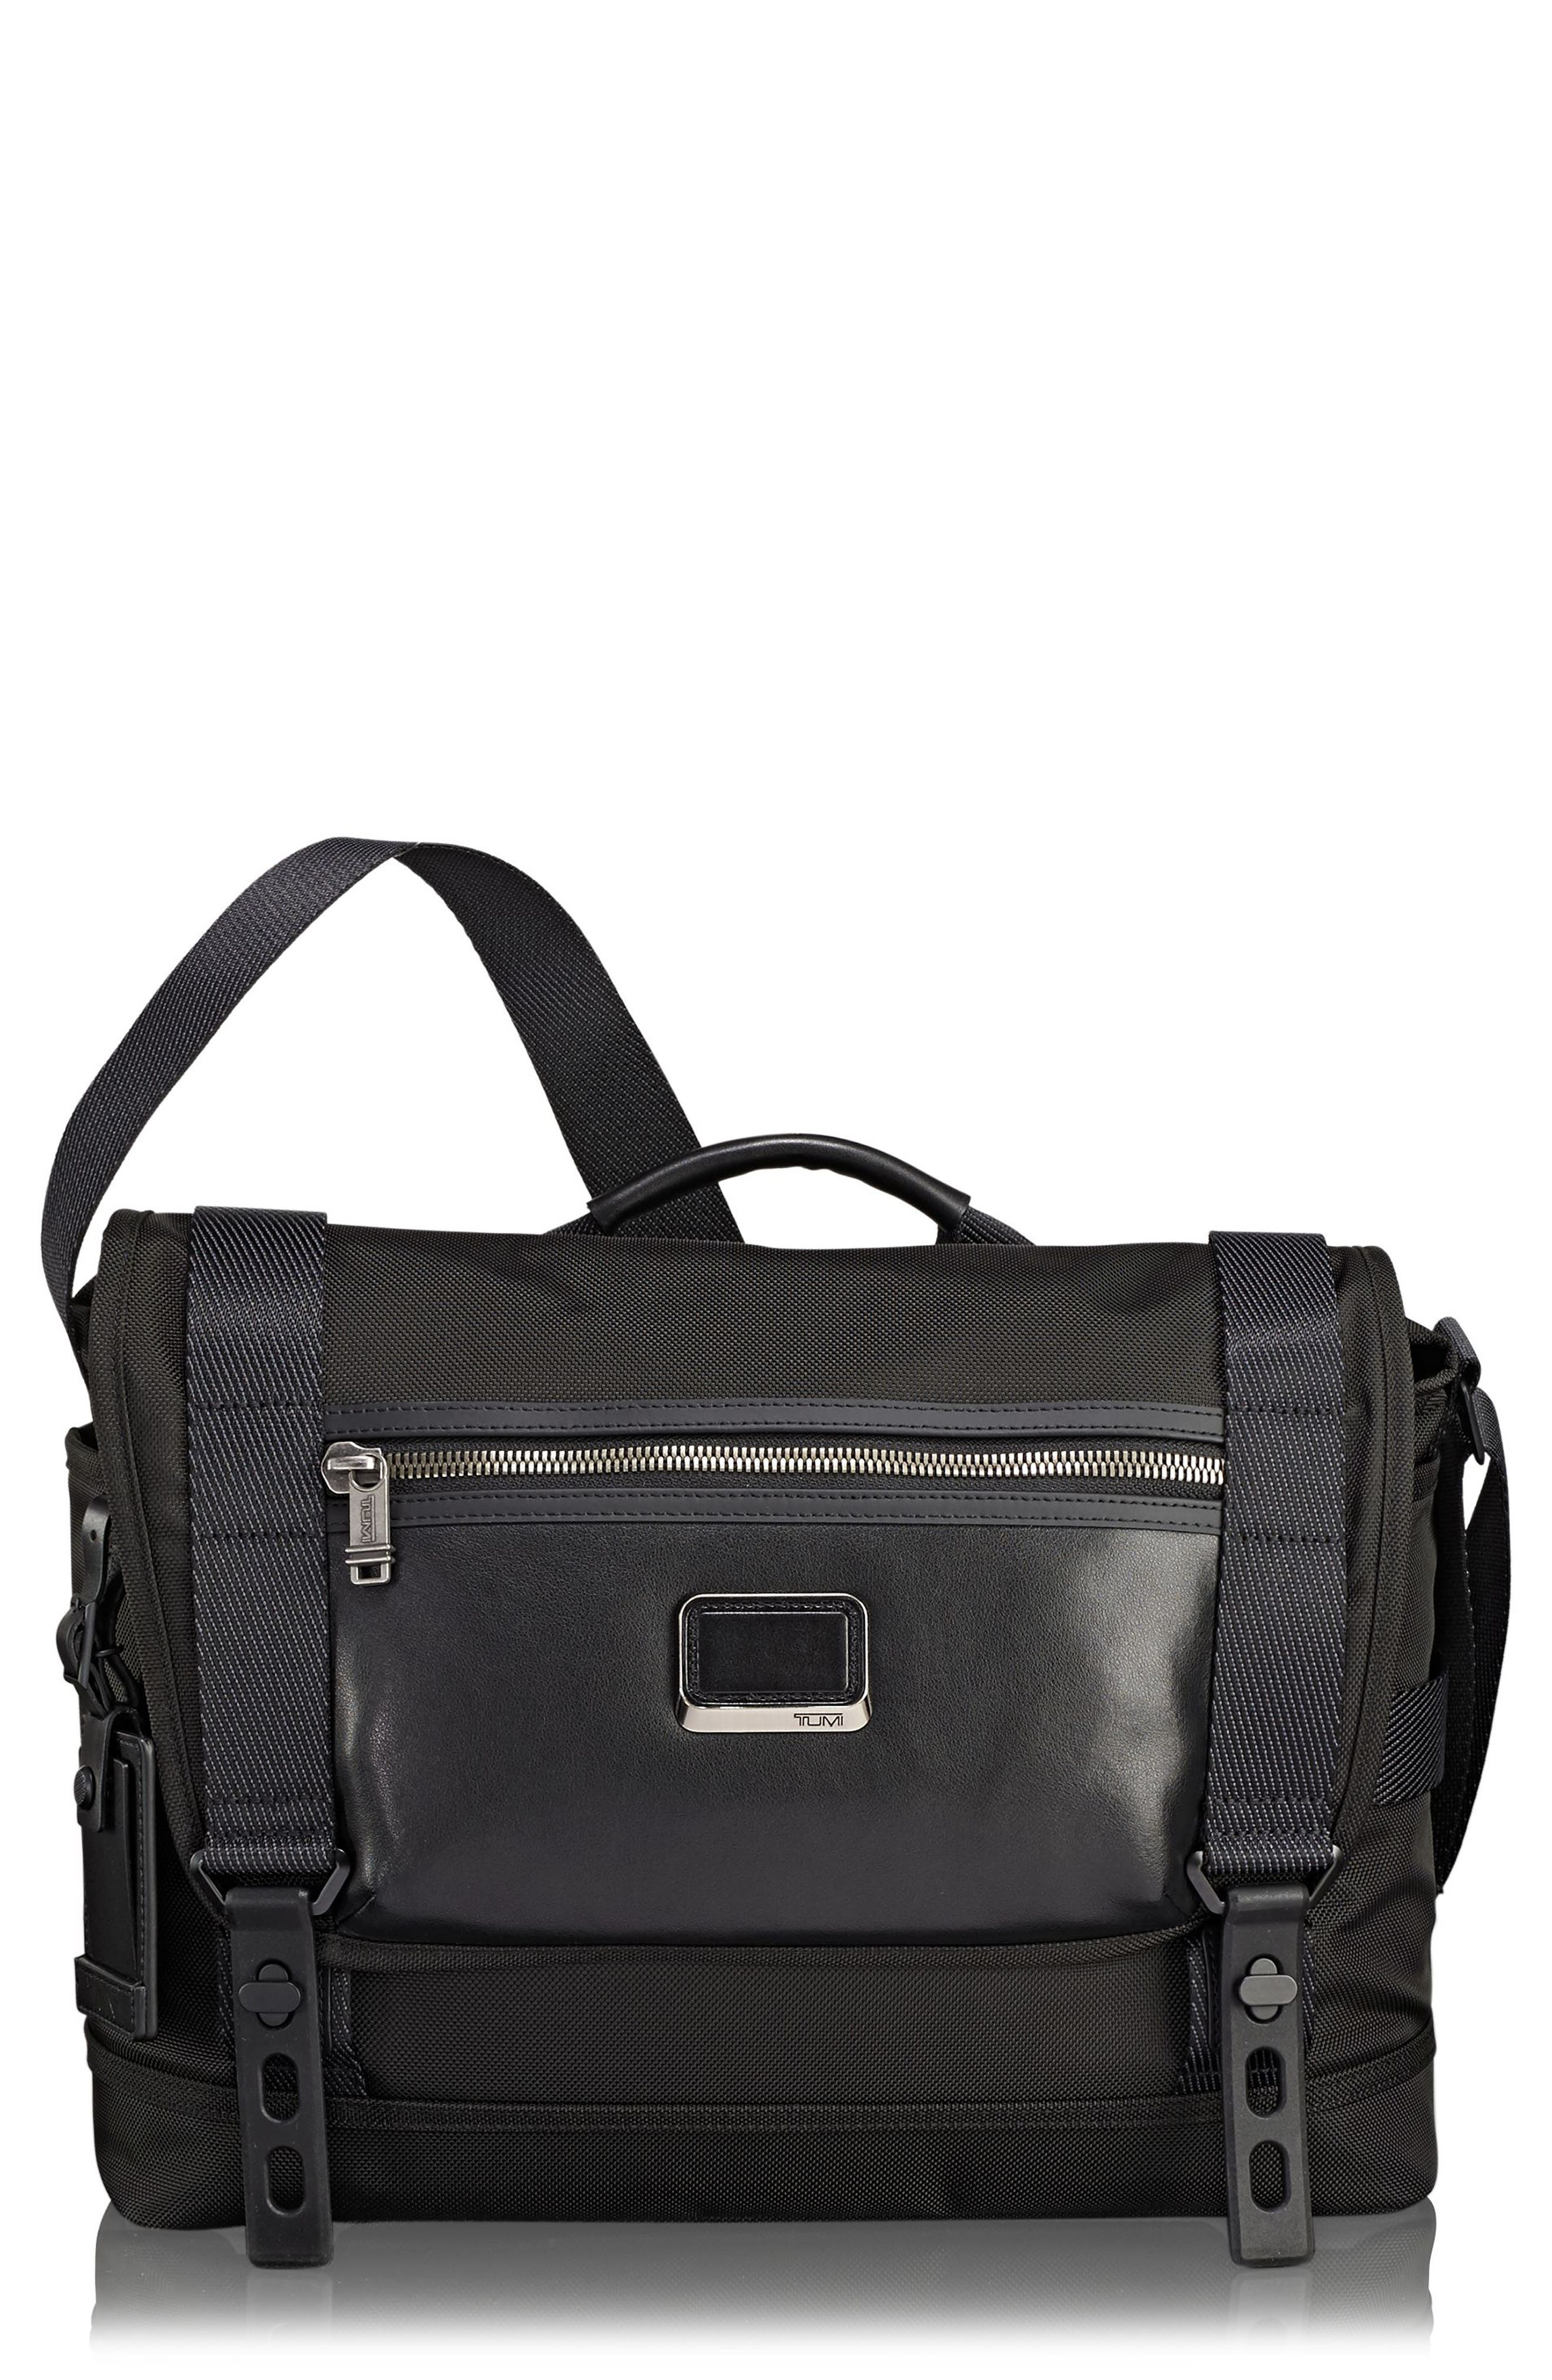 Alpha Bravo - Fallon Messenger Bag - Black